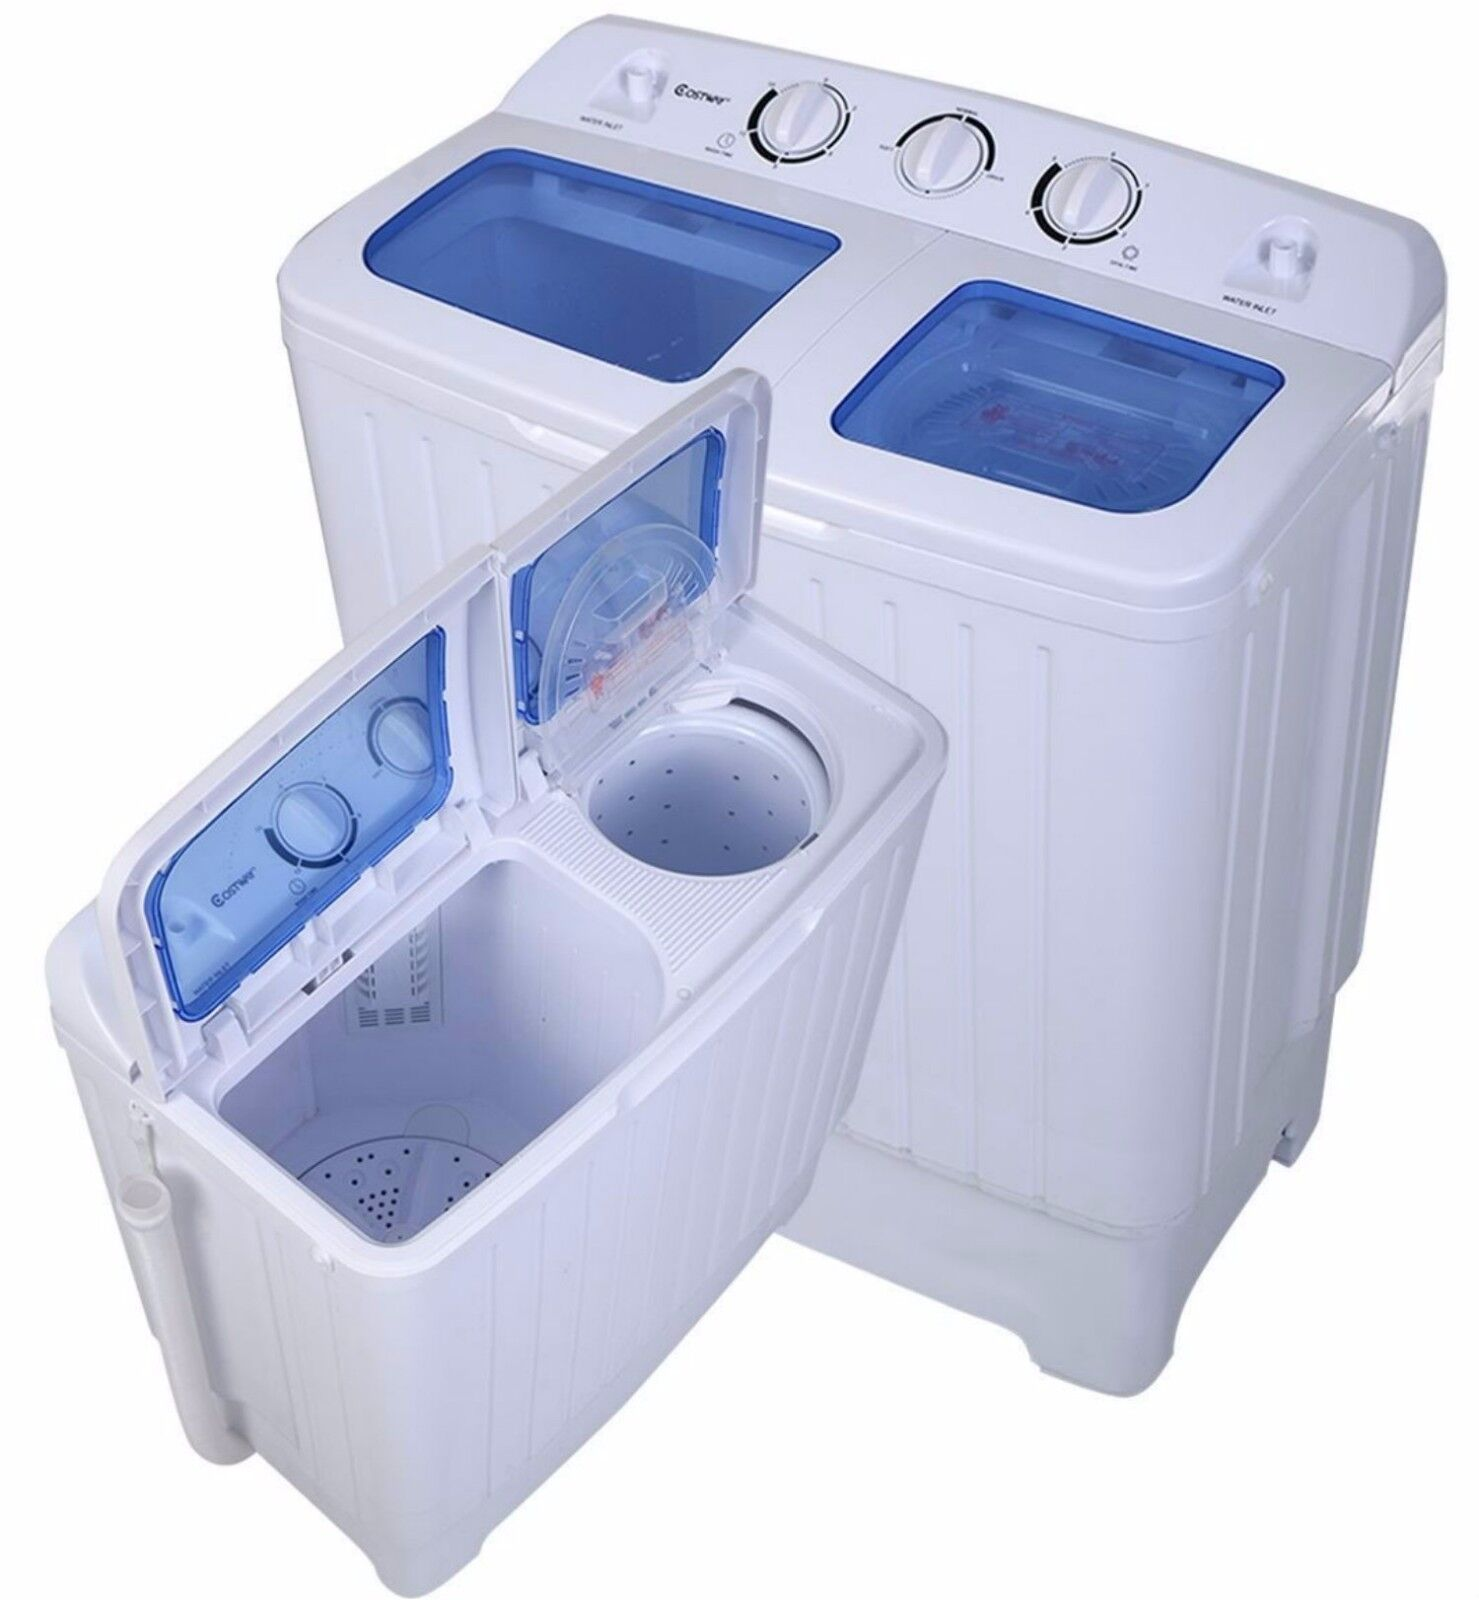 Apartment Washer And Dryer: Washer And Dryer Combo Portable Washing Machine 11lbs